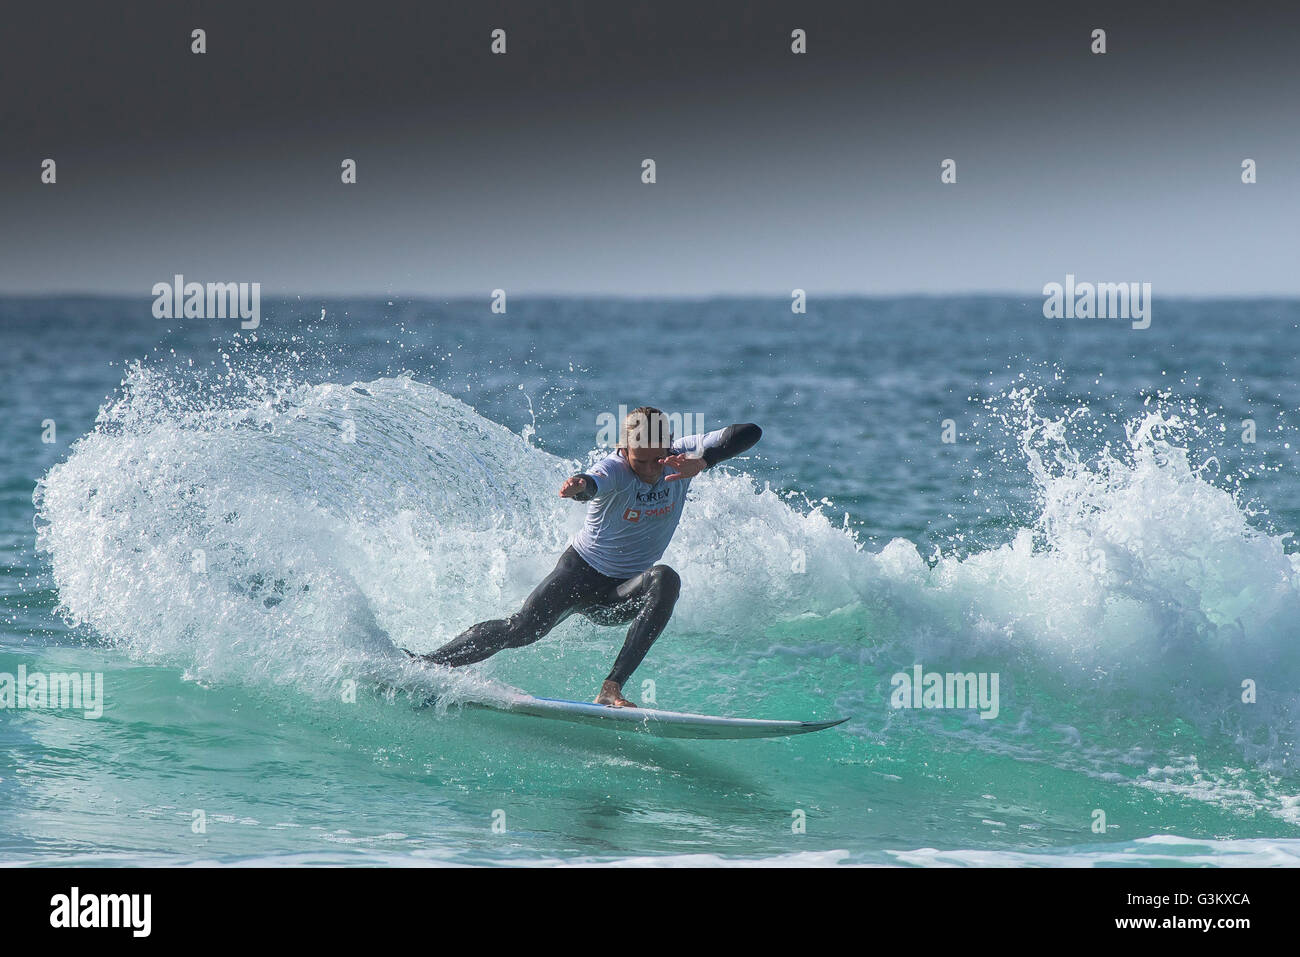 Un surfeur en action spectaculaire qu'il participe à un UK Pro Surf Tour à concurrence de Fistral Photo Stock